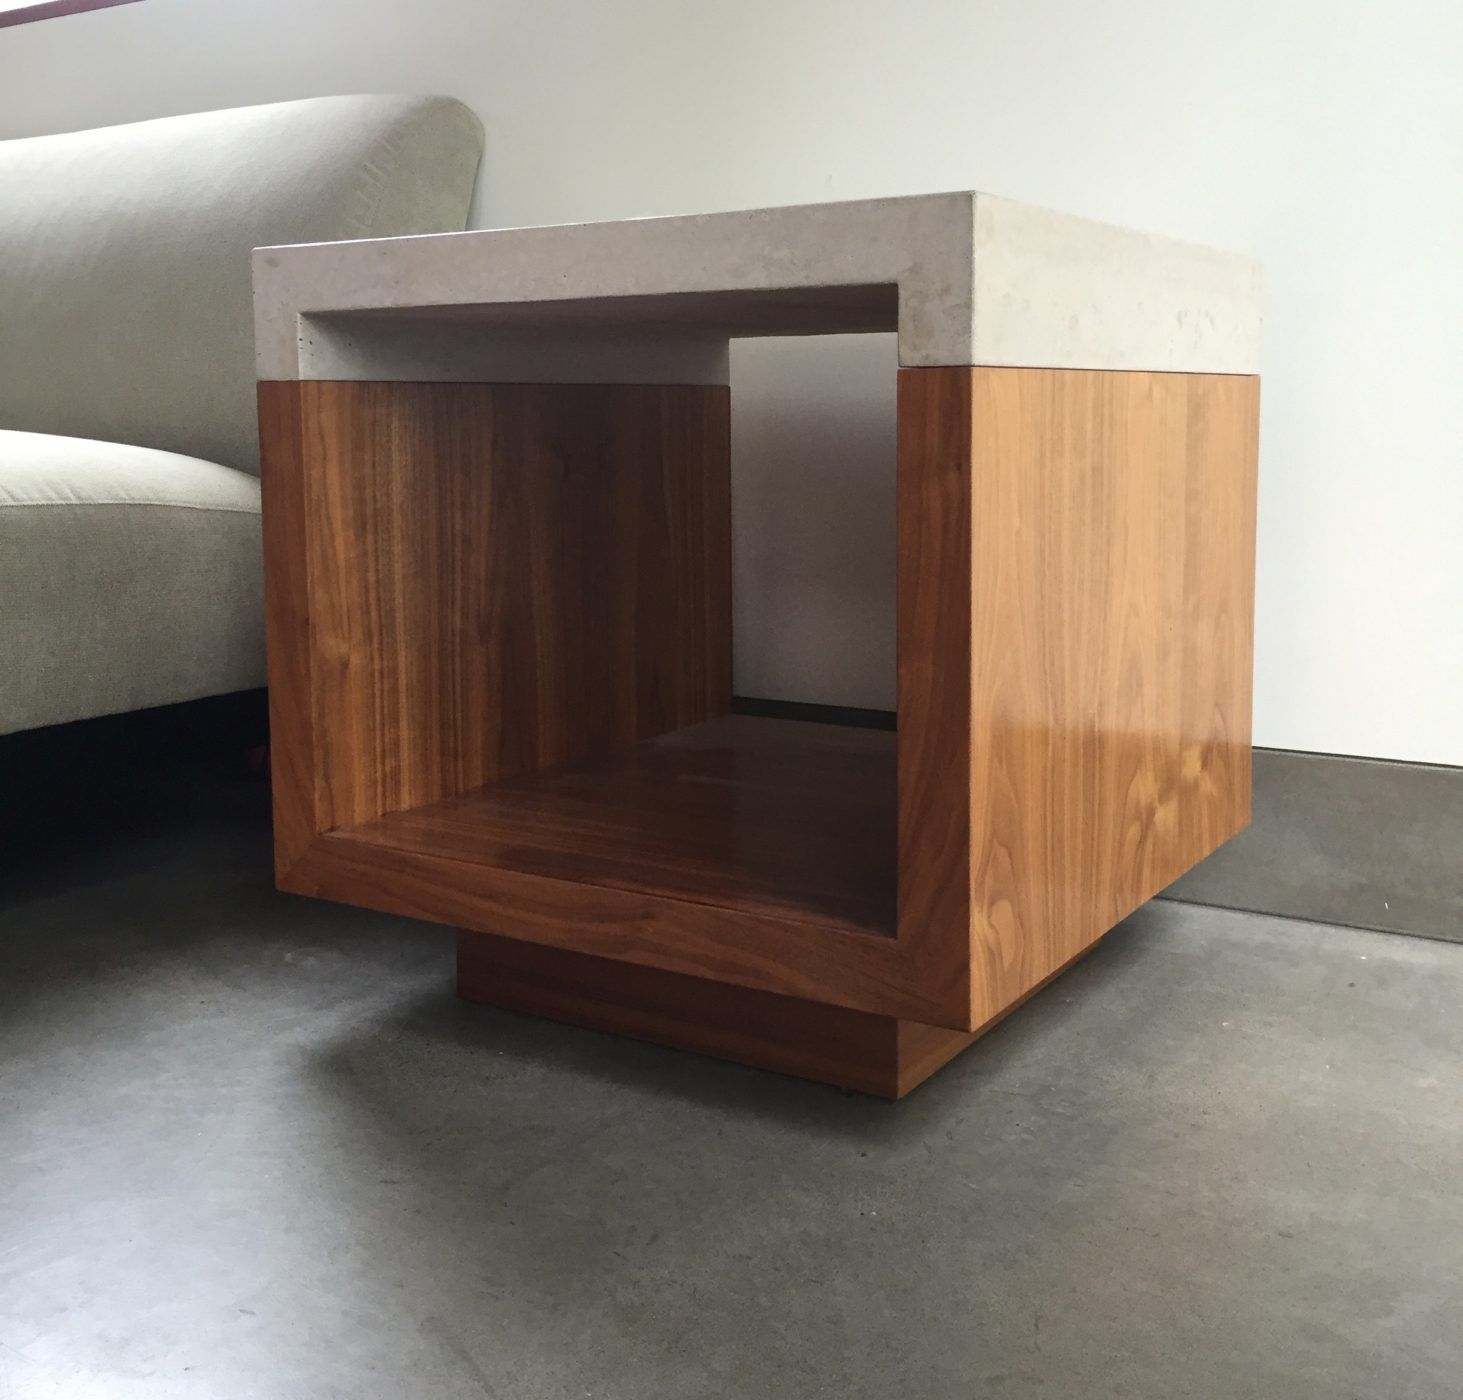 concrete and wood furniture. Beautifully Crafted Furniture Pieces In Concrete, Wood, Glass And Steel Designed Built By Eric Butler Design. Concrete Wood